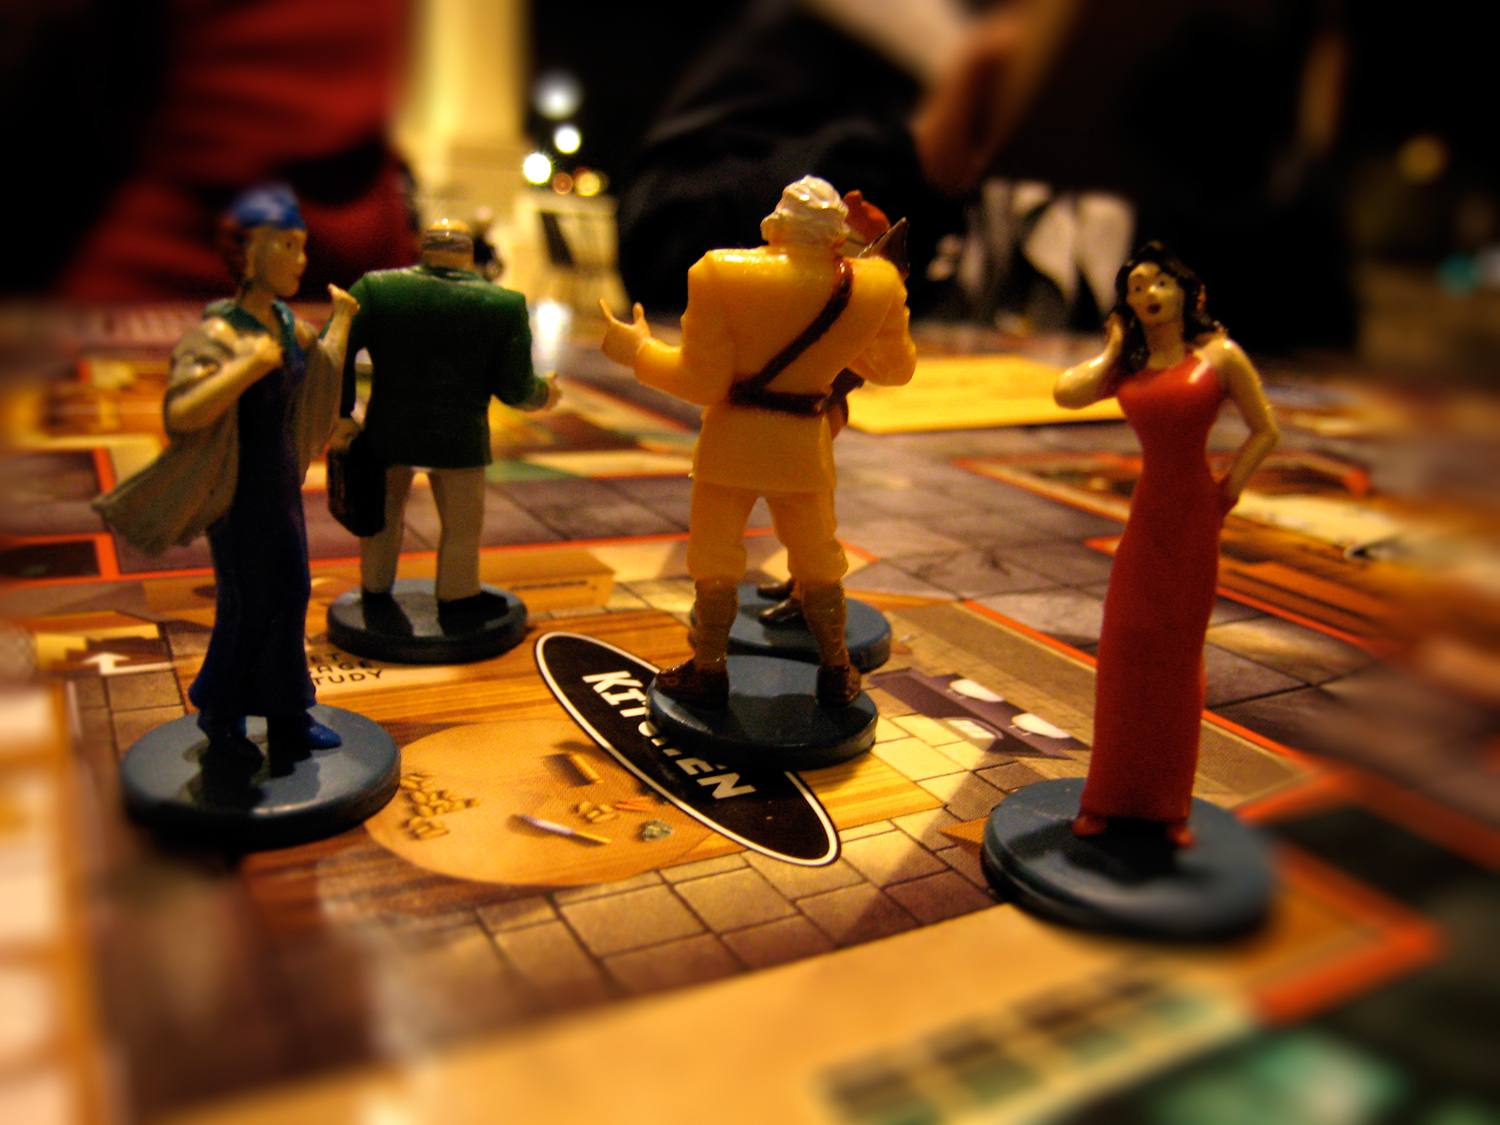 Four Clue pieces on the board.